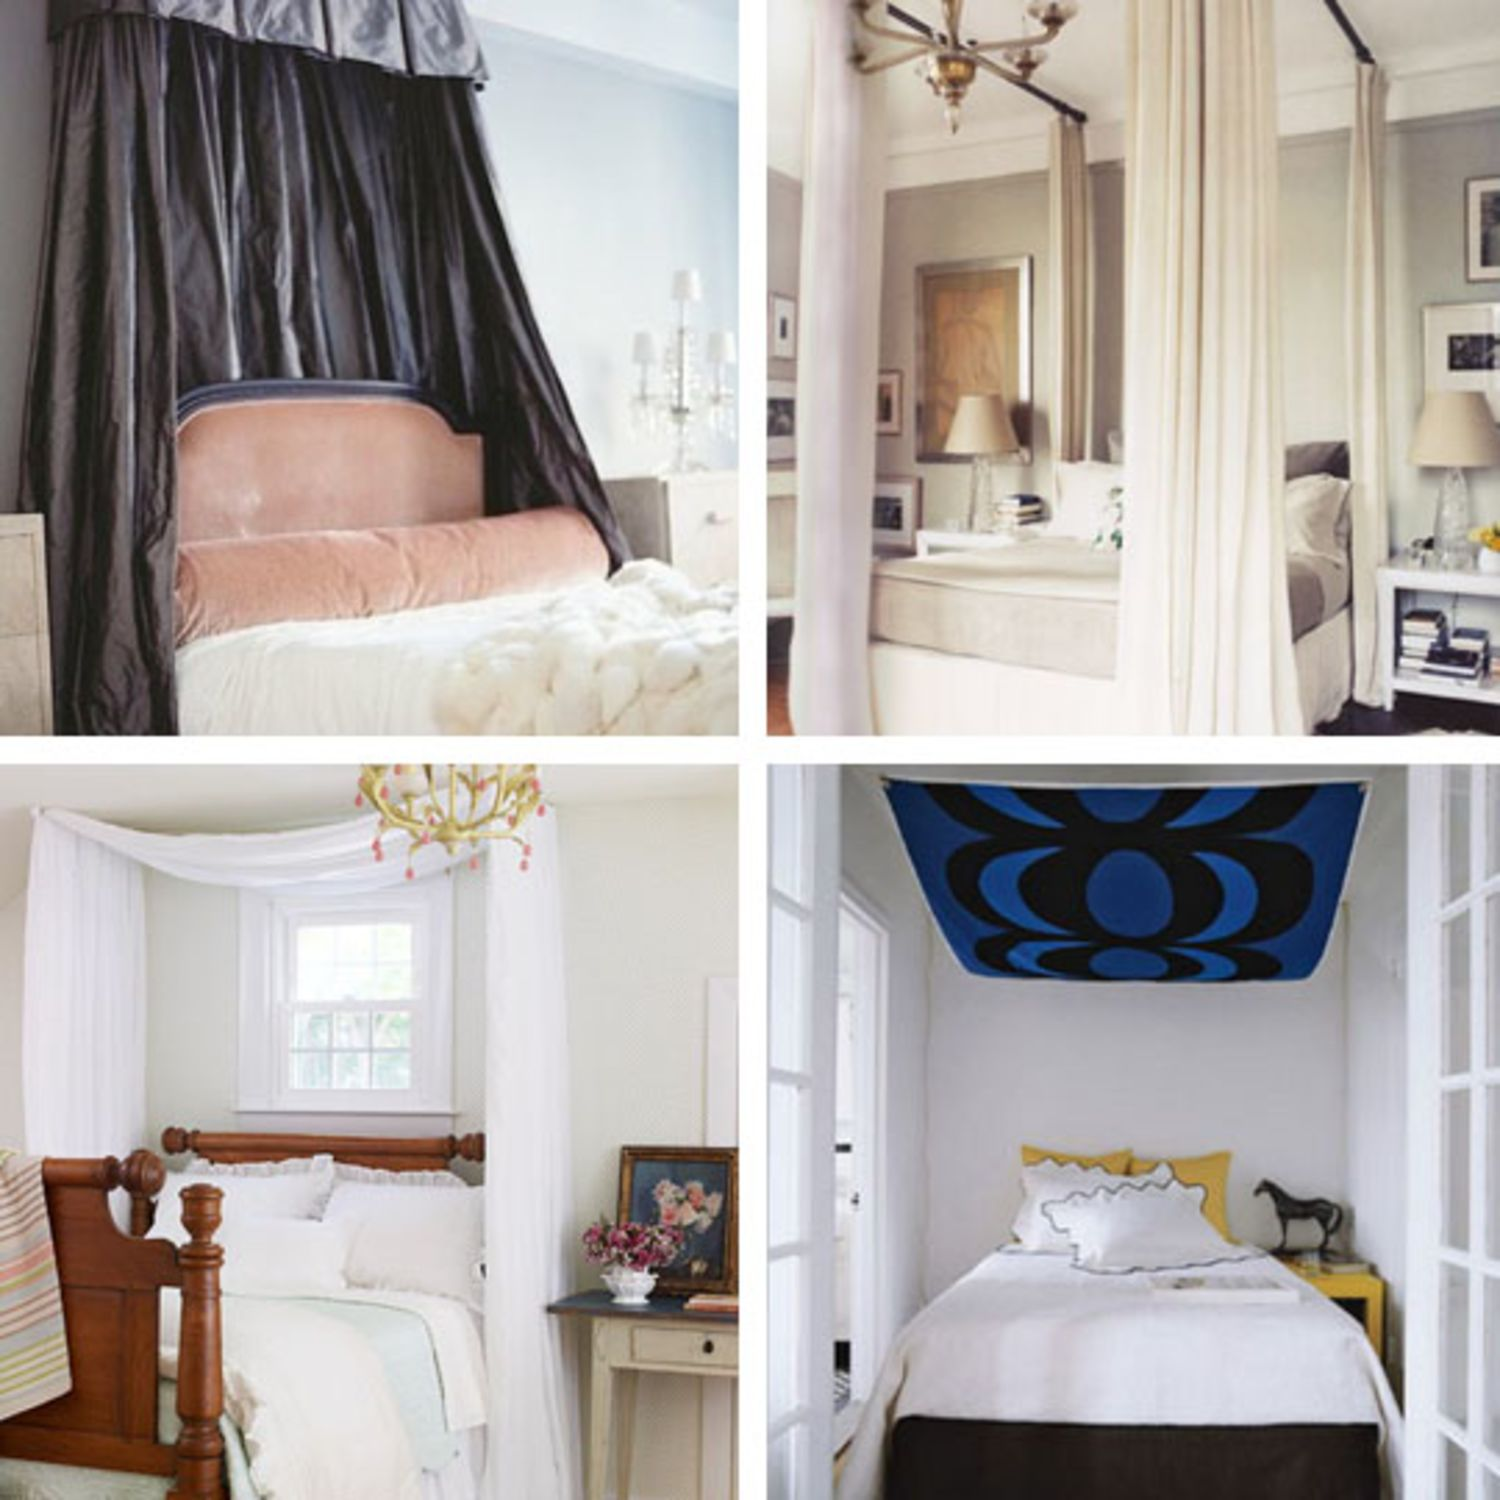 Cheap New Beds: DIY Ideas For Getting The Look Of A Canopy Bed Without